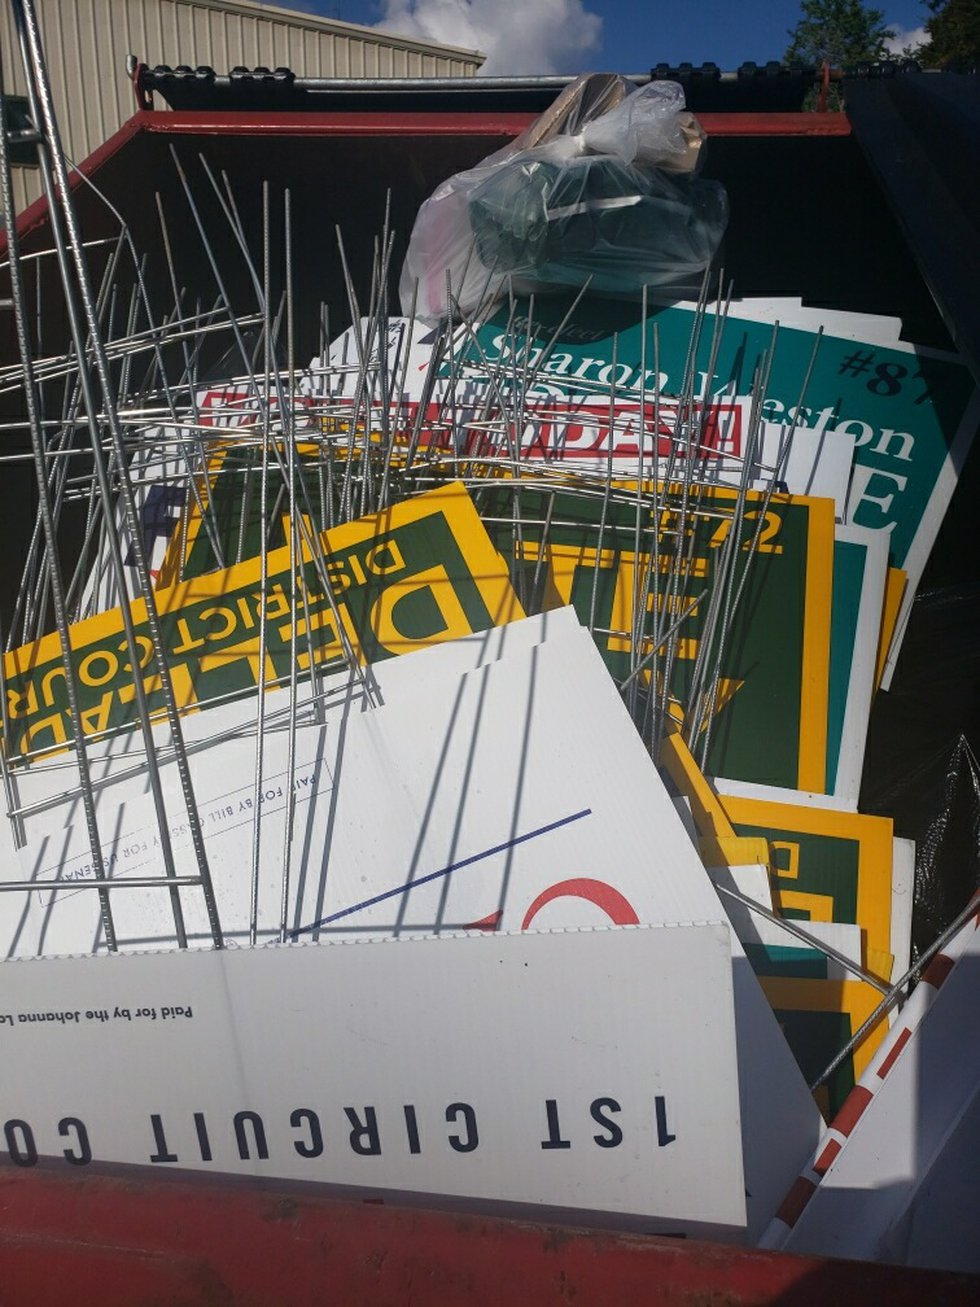 These campaign signs appear to have been pulled out the ground and thrown away in a trash can...